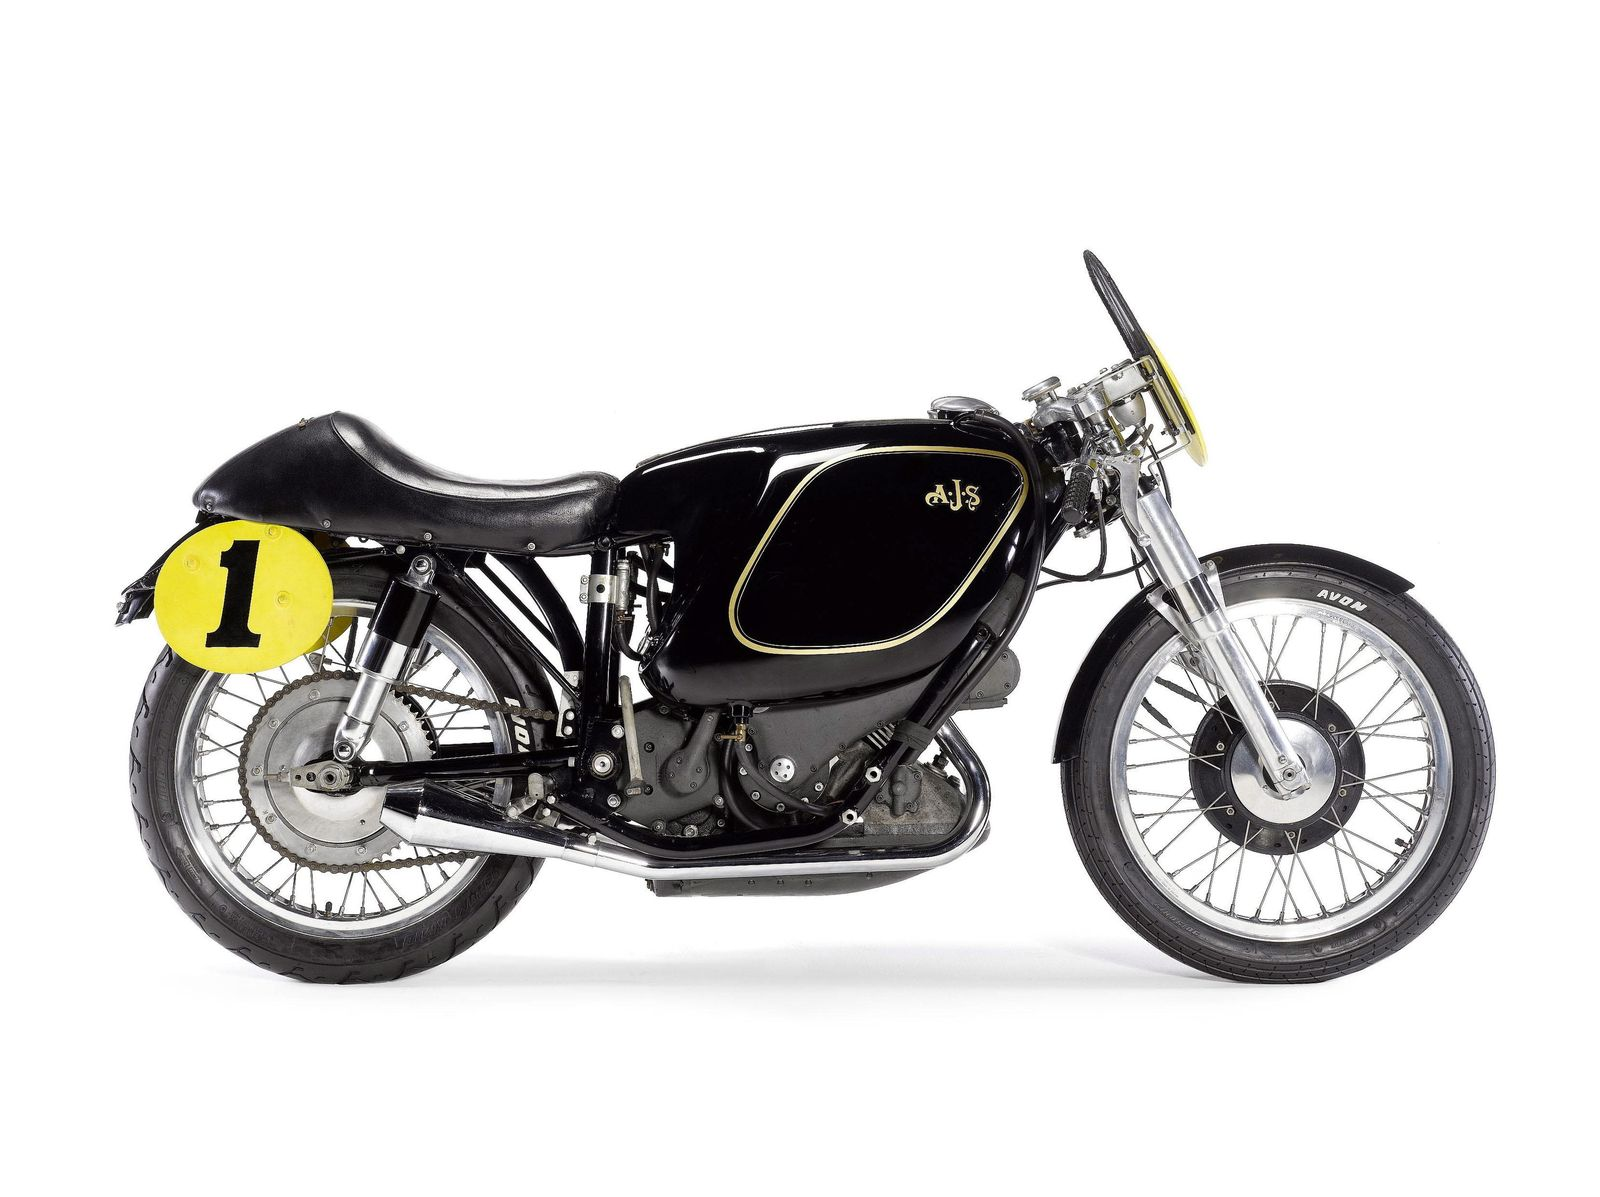 1954 AJS E95 Porcupine Motorcycle to Be Auctioned at Bonhams